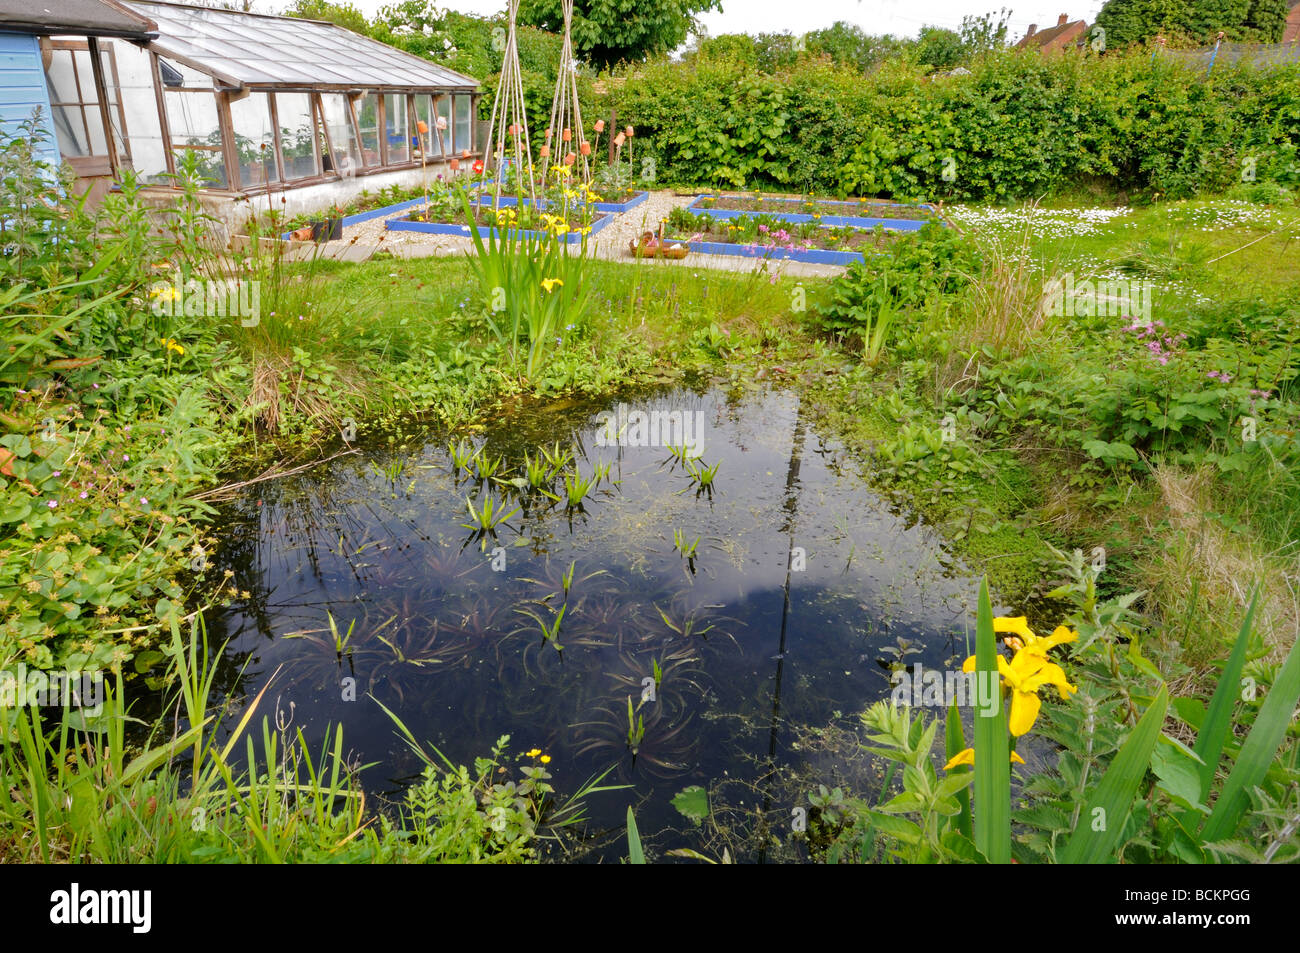 Small Urban Garden With Wildlife Pond And Raised Vegetable Beds And